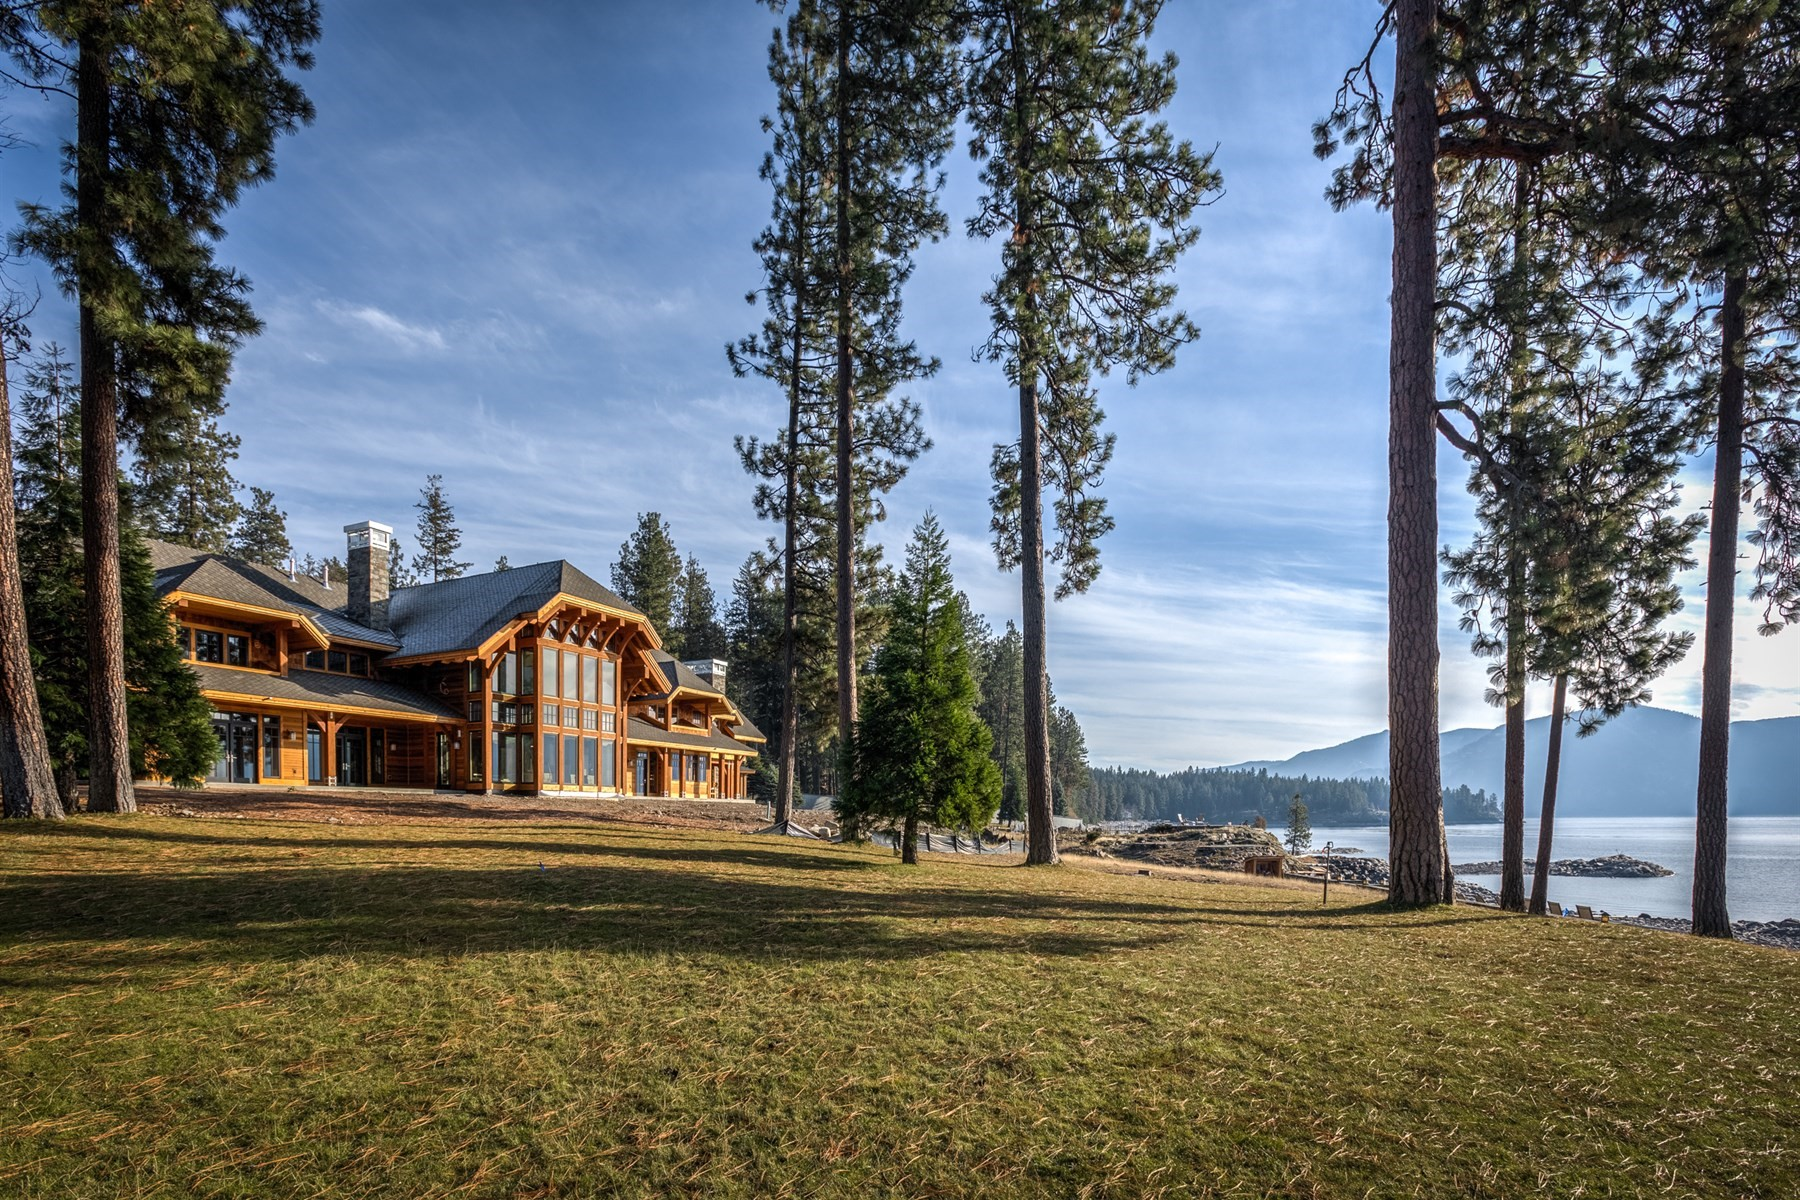 Single Family Homes for Sale at Kullyspell Luxury Estate 90 Kullyspell Drive Hope, Idaho 83836 United States